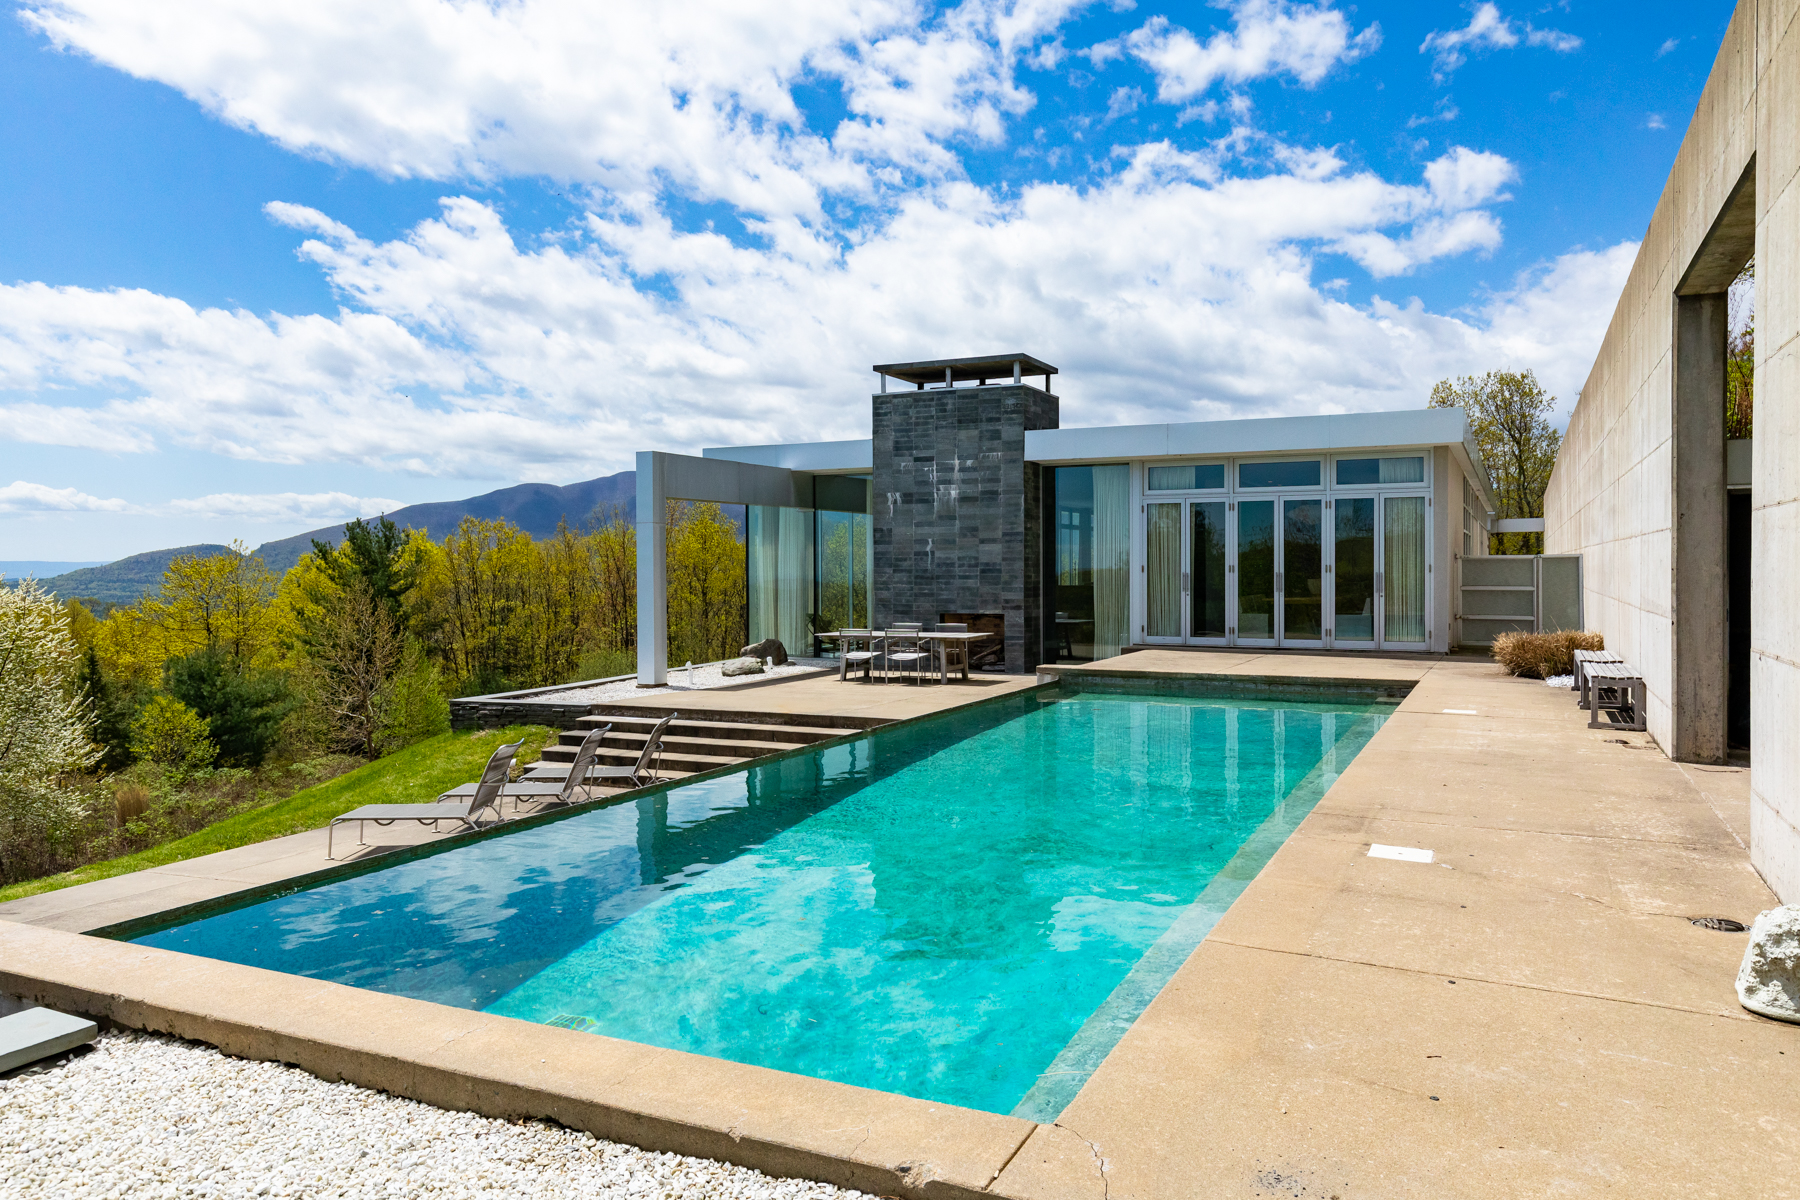 Single Family Homes for Sale at Sophisticated Modern Mountain House 202 Dancing Rock Rd Shokan, New York 12481 United States